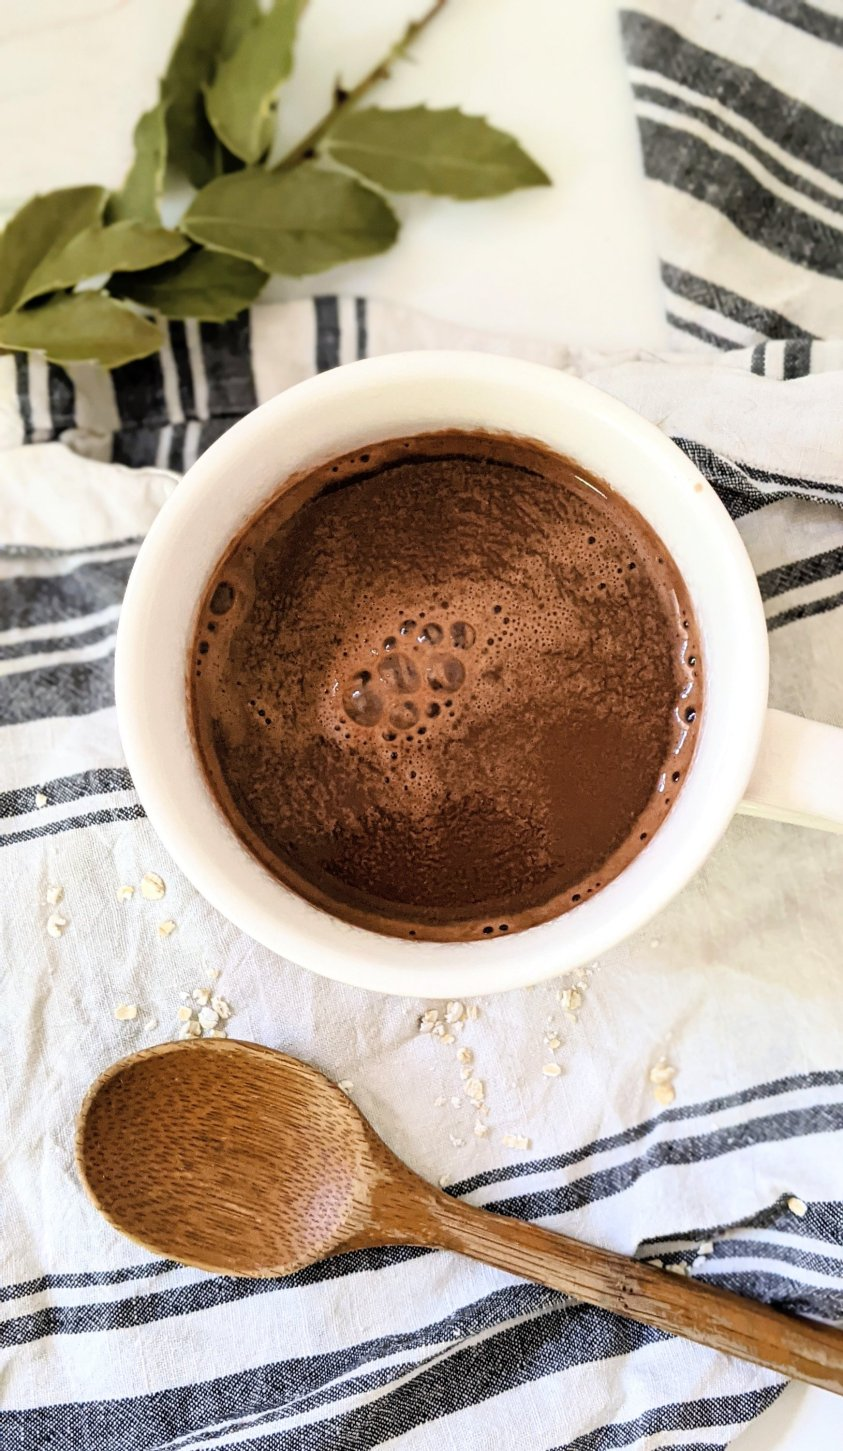 salted oat milk hot chocolate vegan gluten free dairy free hot cacao recipes with oat milk homemade not slimy how to make easy oat milk in blender recipe hot chocolate with sea salt